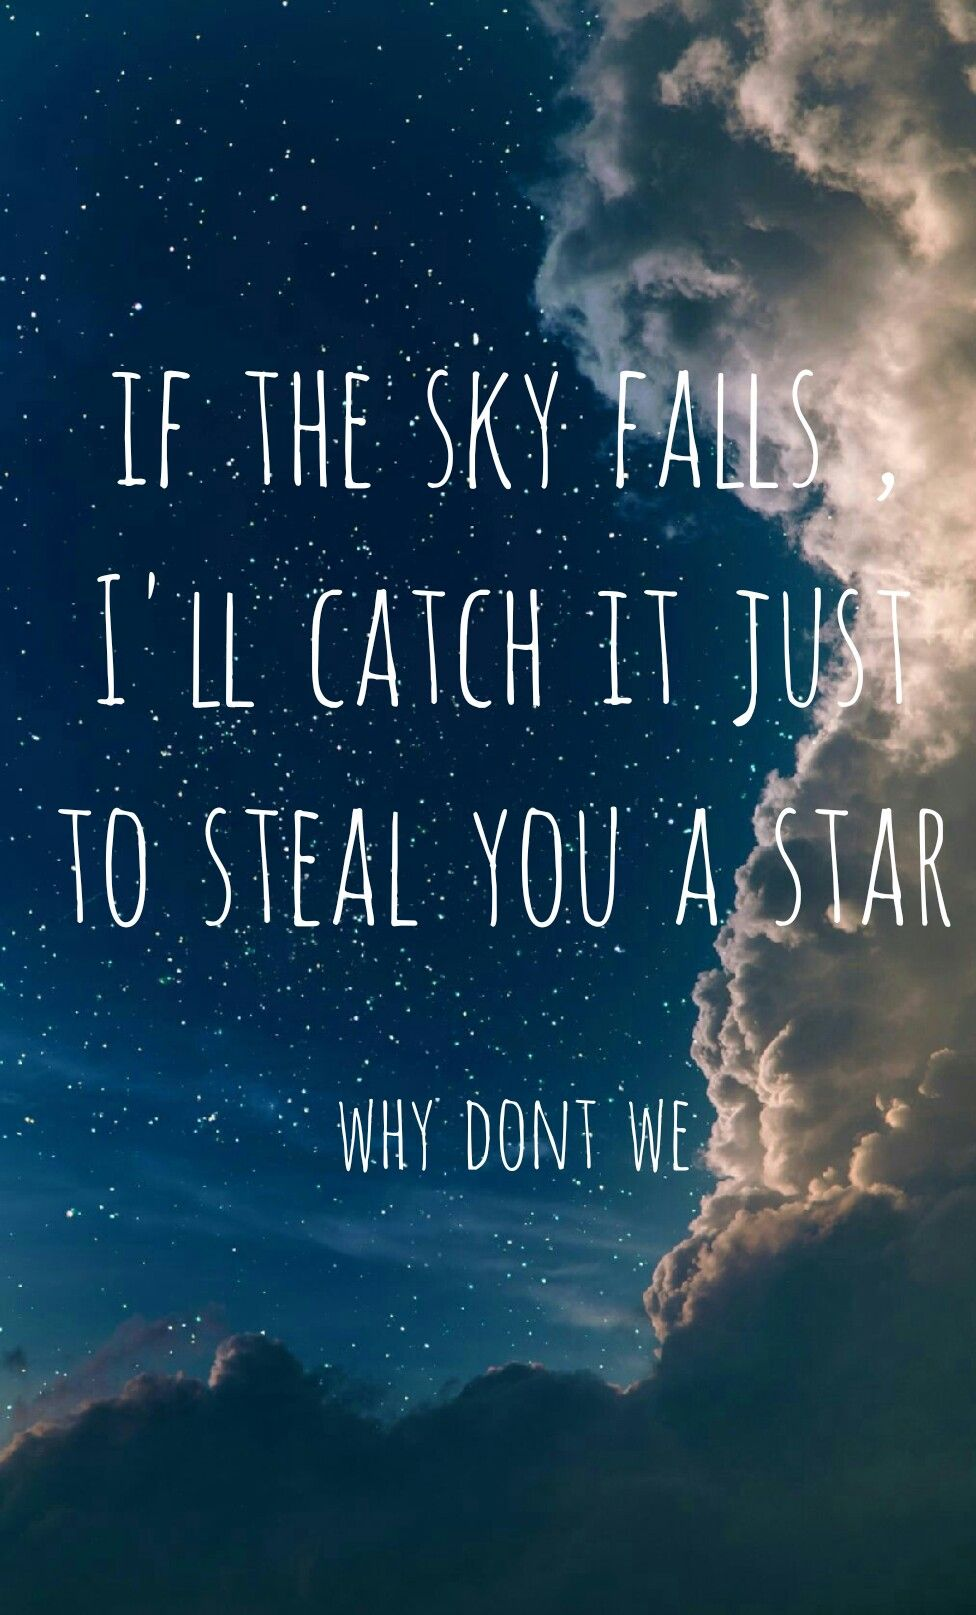 Why Dont We Wallpaper Lyrics From Free